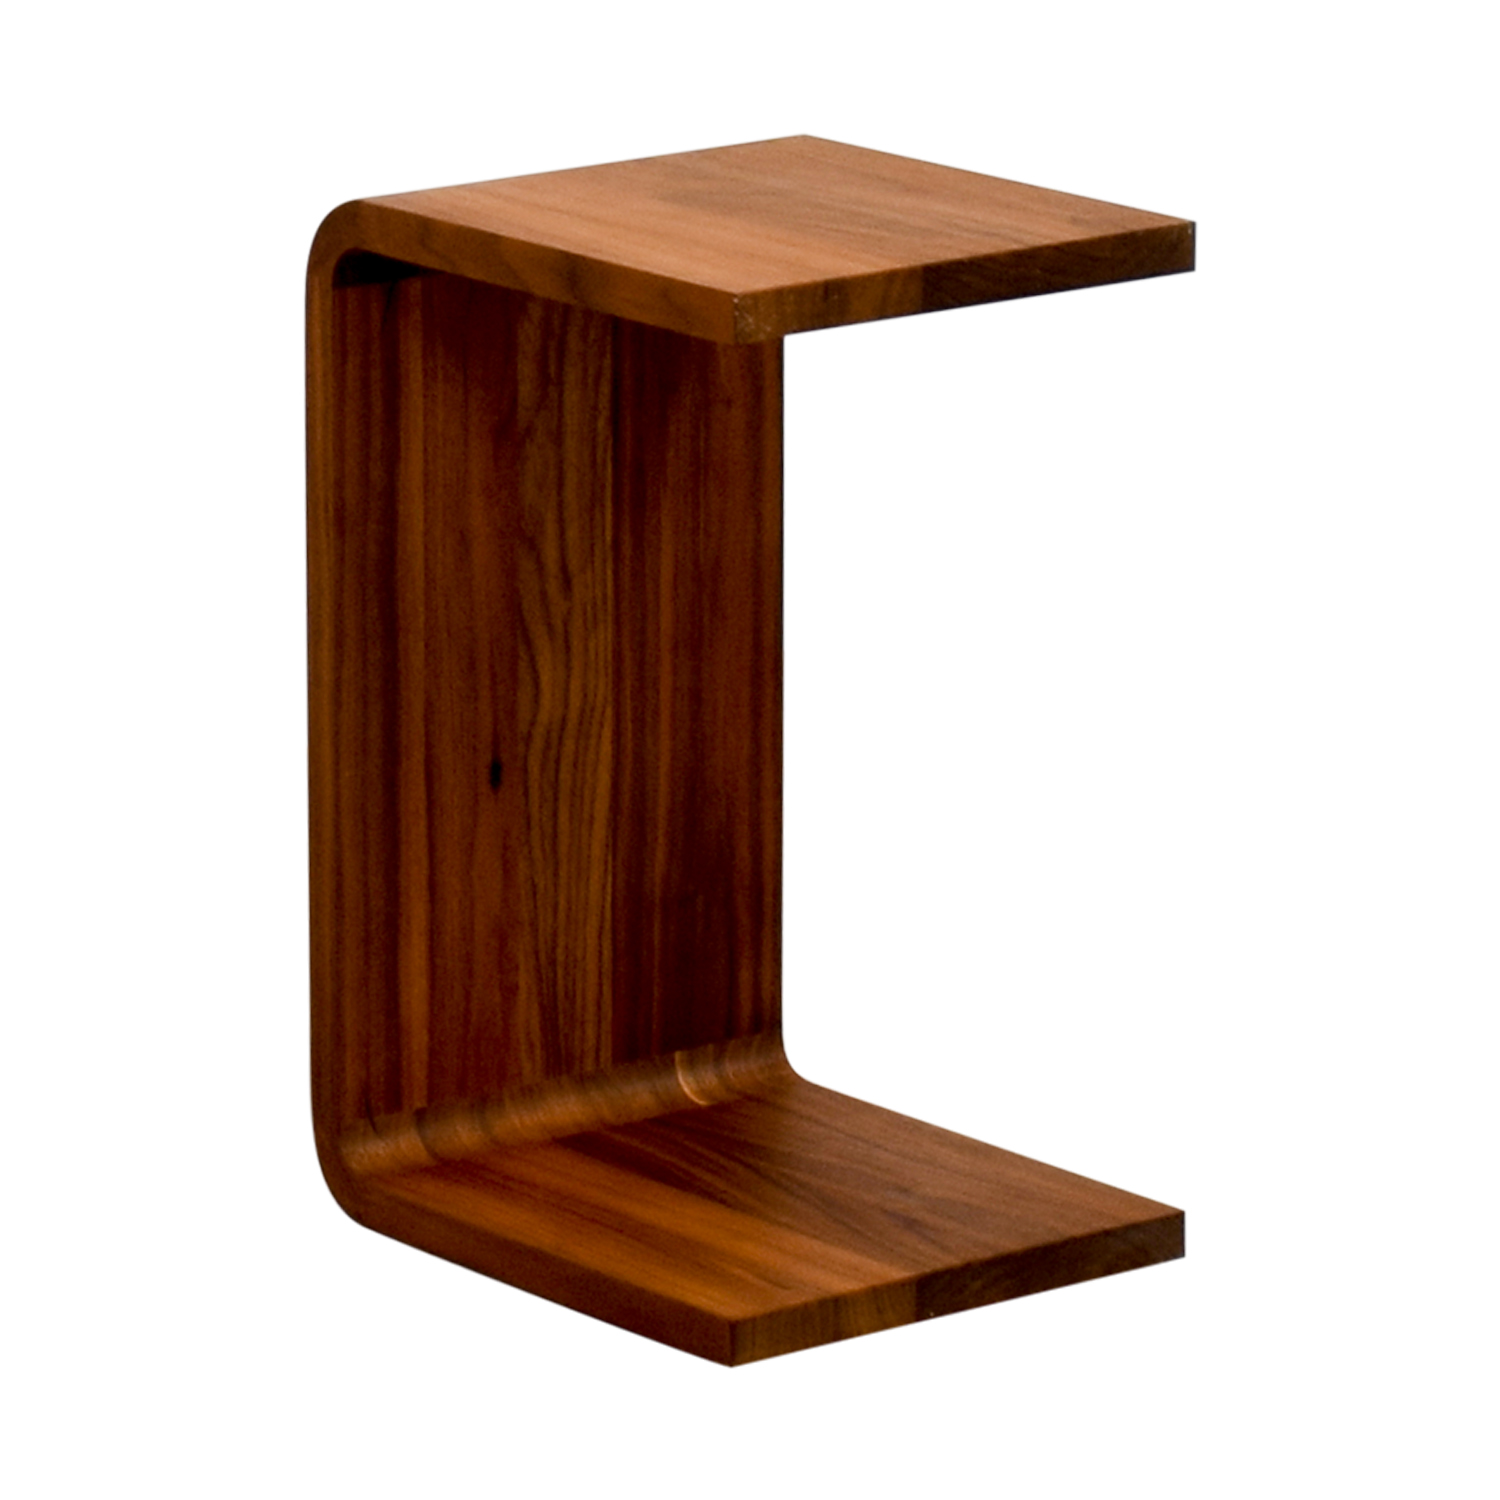 Zeitraum Zeitraum Formstelle C-Shaped Waitress Side Table on sale